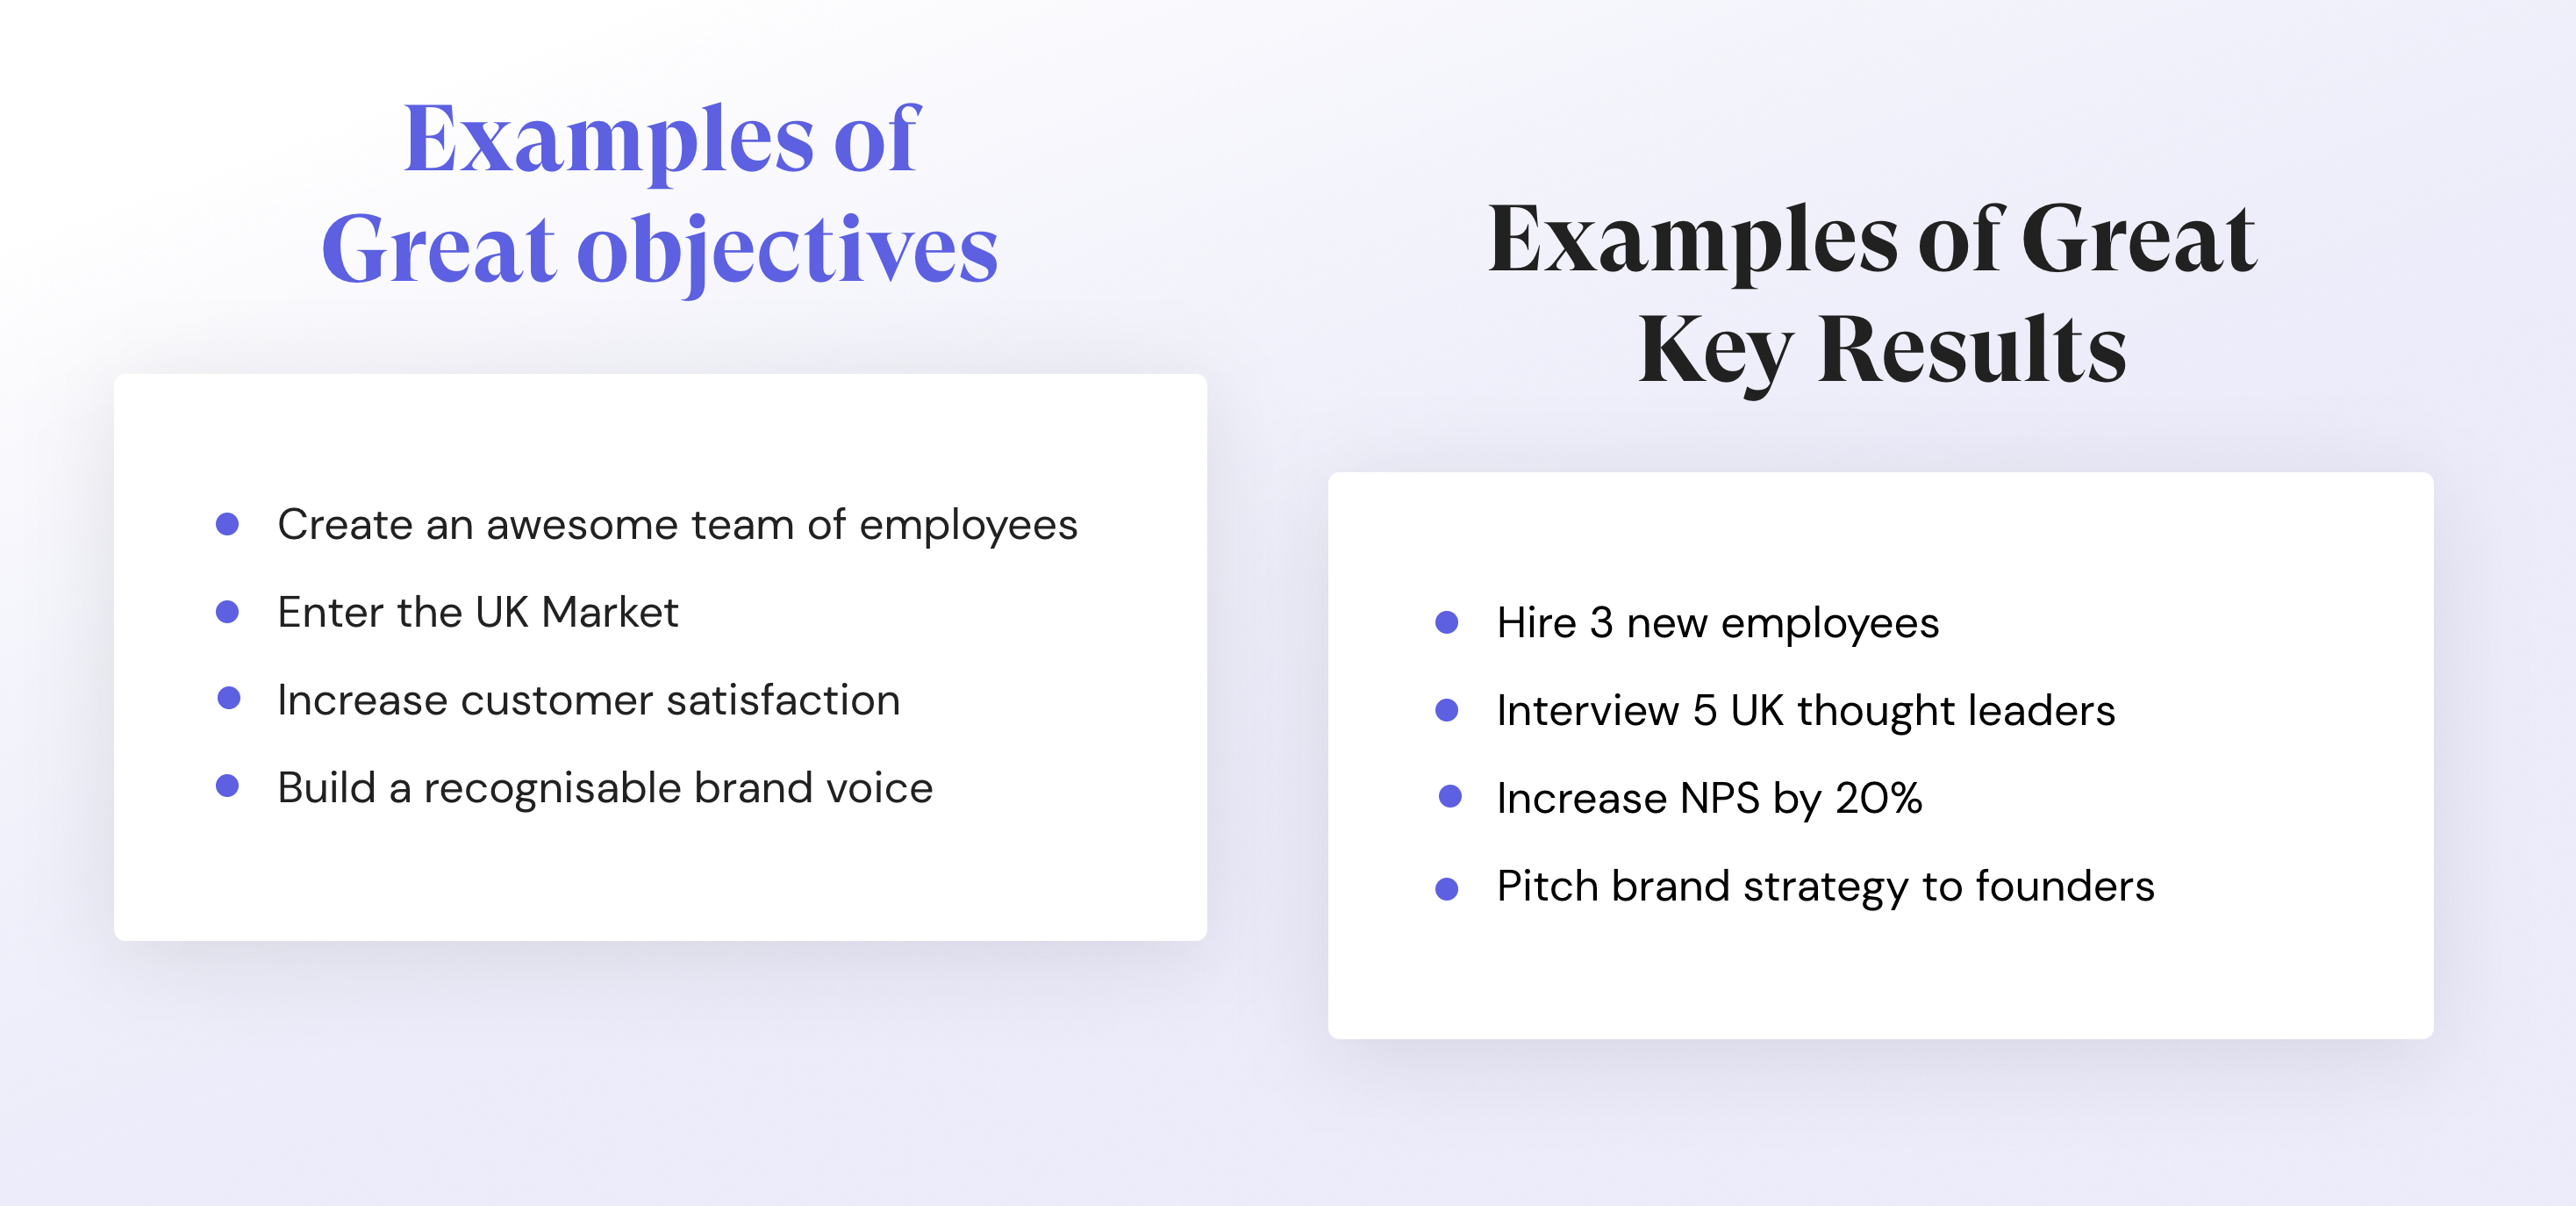 Examples of great objectives and key results